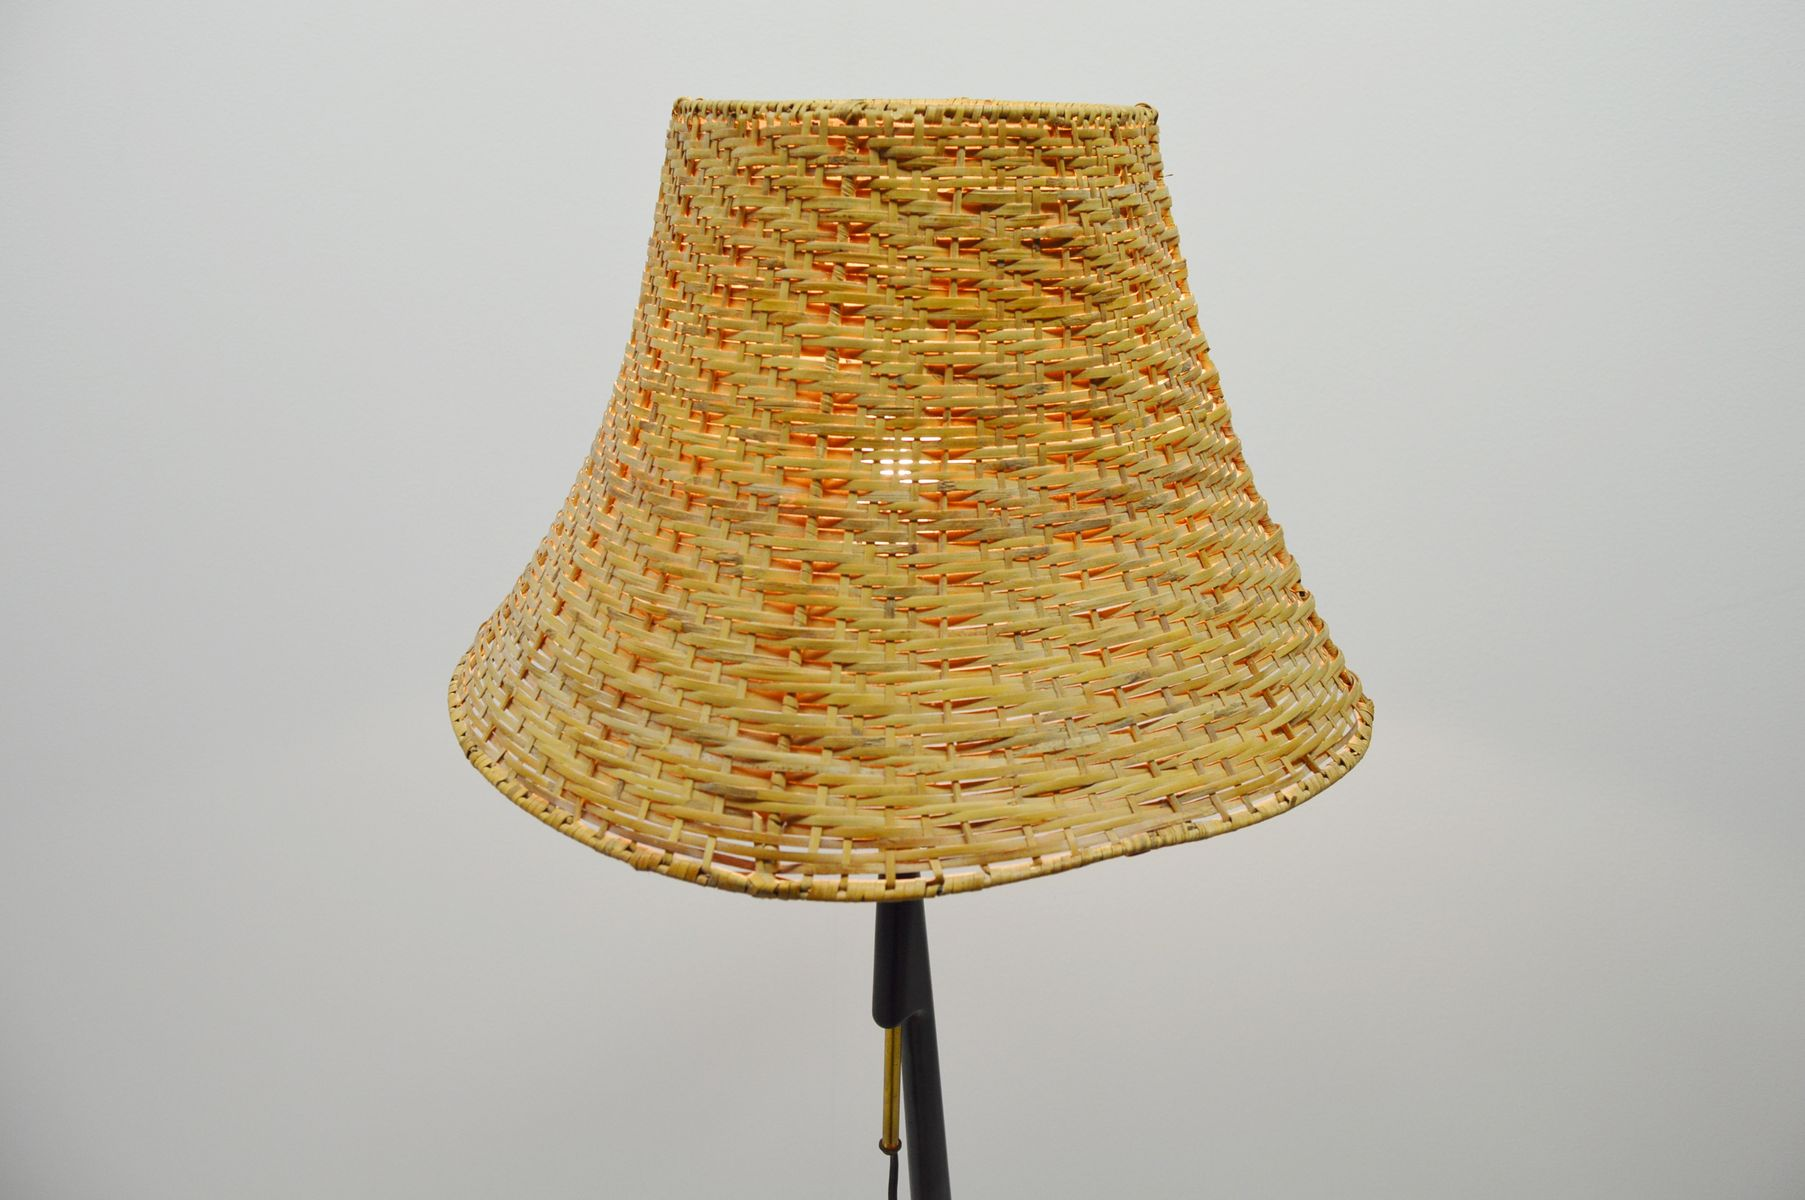 Teak Floor Lamp with Integrated Side Table, 1960s for sale at Pamono